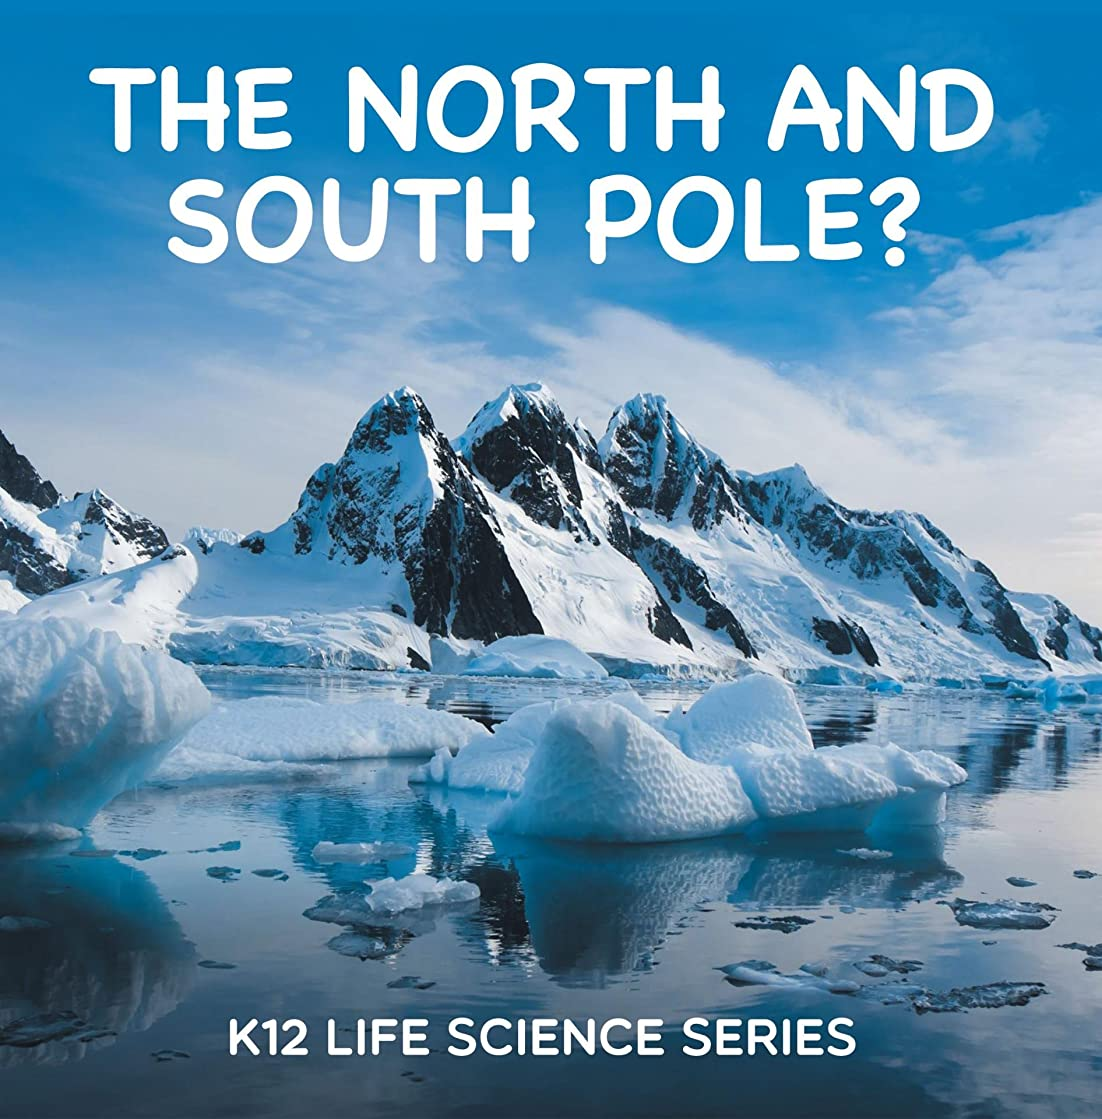 経験的極めて重要な貢献The North and South Pole? : K12 Life Science Series: Arctic Exploration and Antarctica Books (Children's Explore Polar Regions Books) (English Edition)